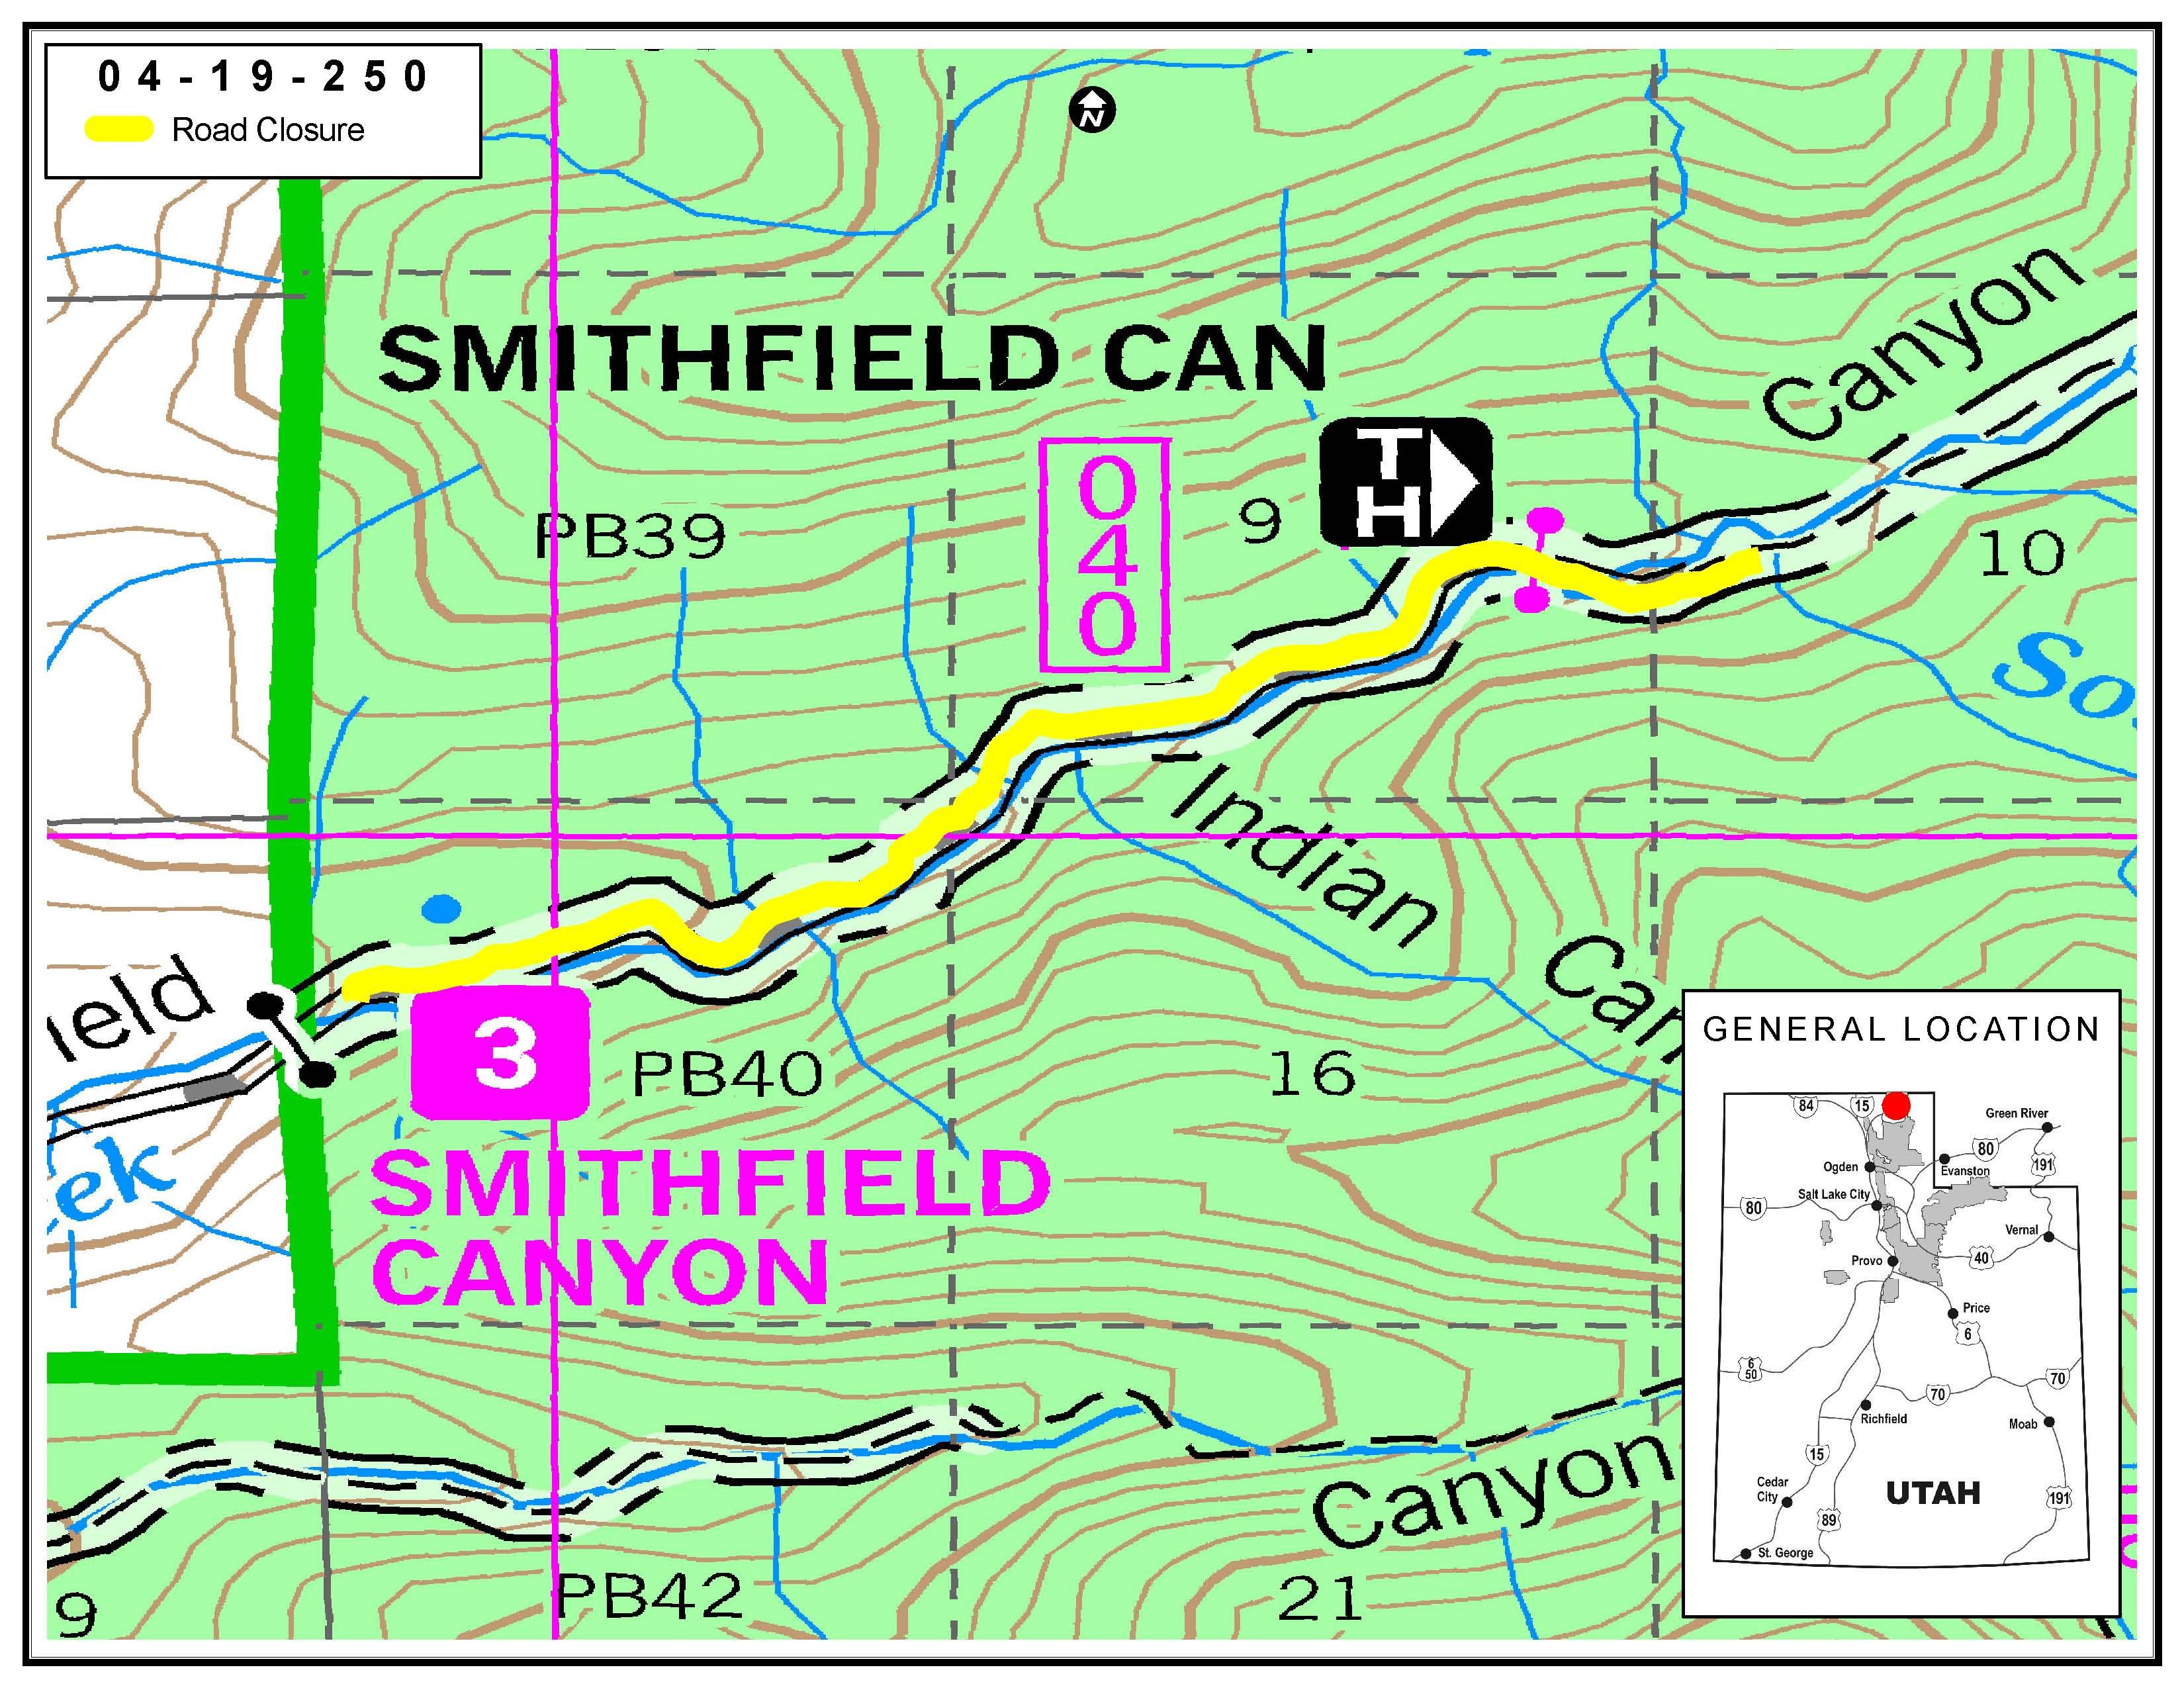 Map showing the Smithfield Canyon Road Closure